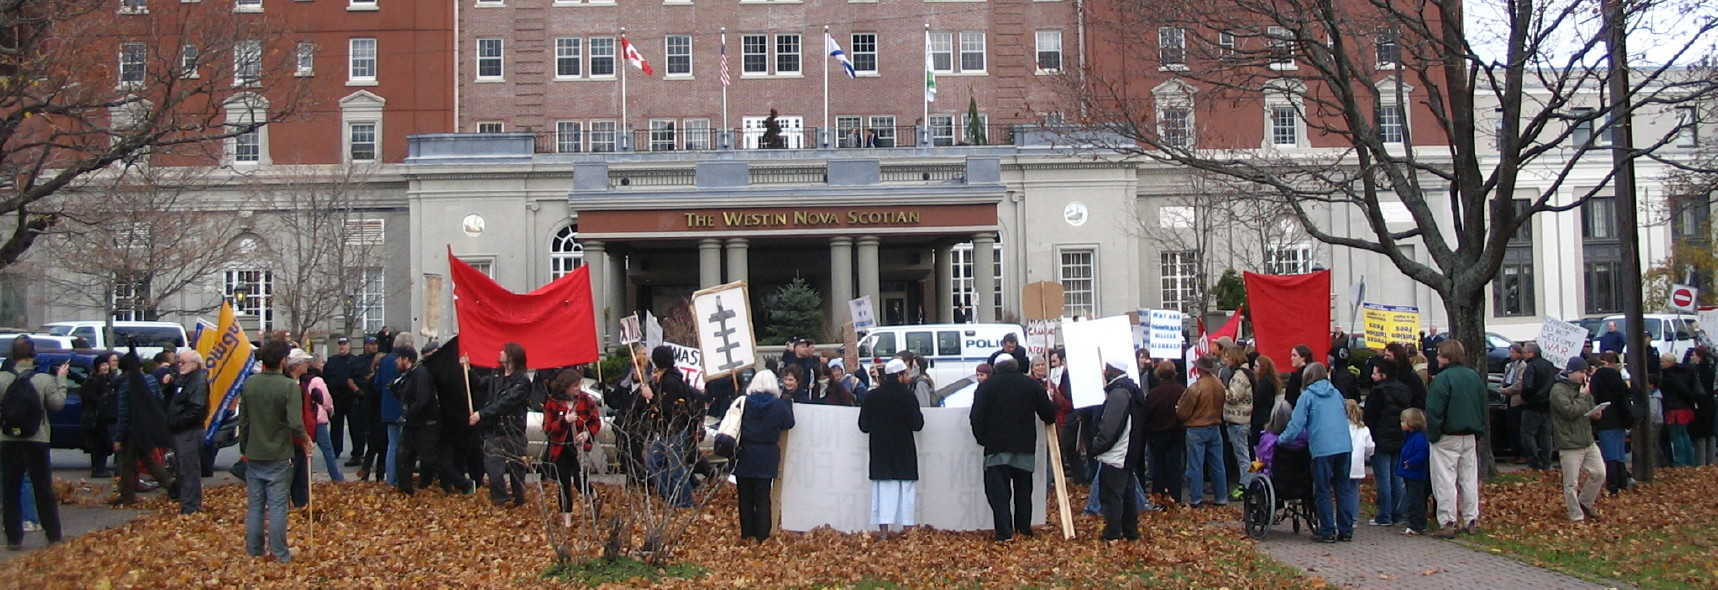 2009.HISF Rally vs Hotel.2